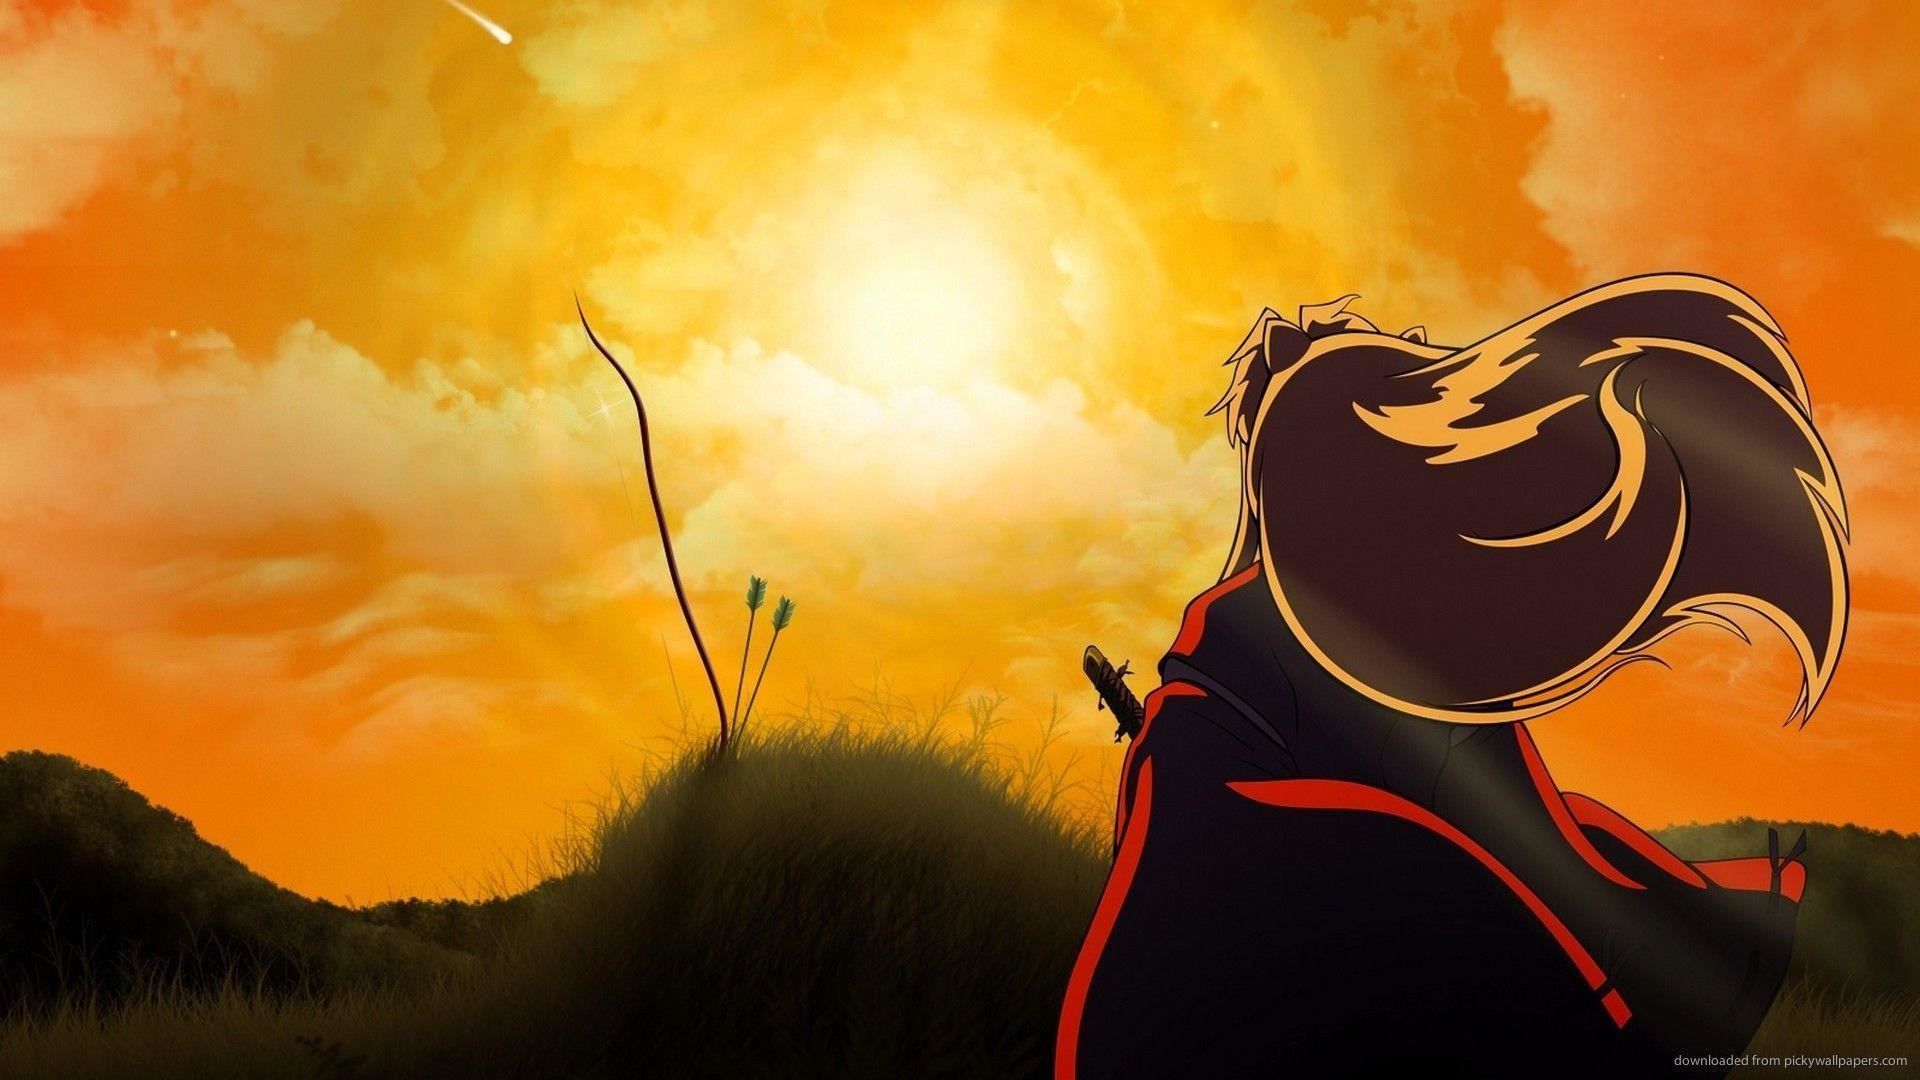 Inuyasha Looking At The Sunset Wallpaper For Blackberry Curve